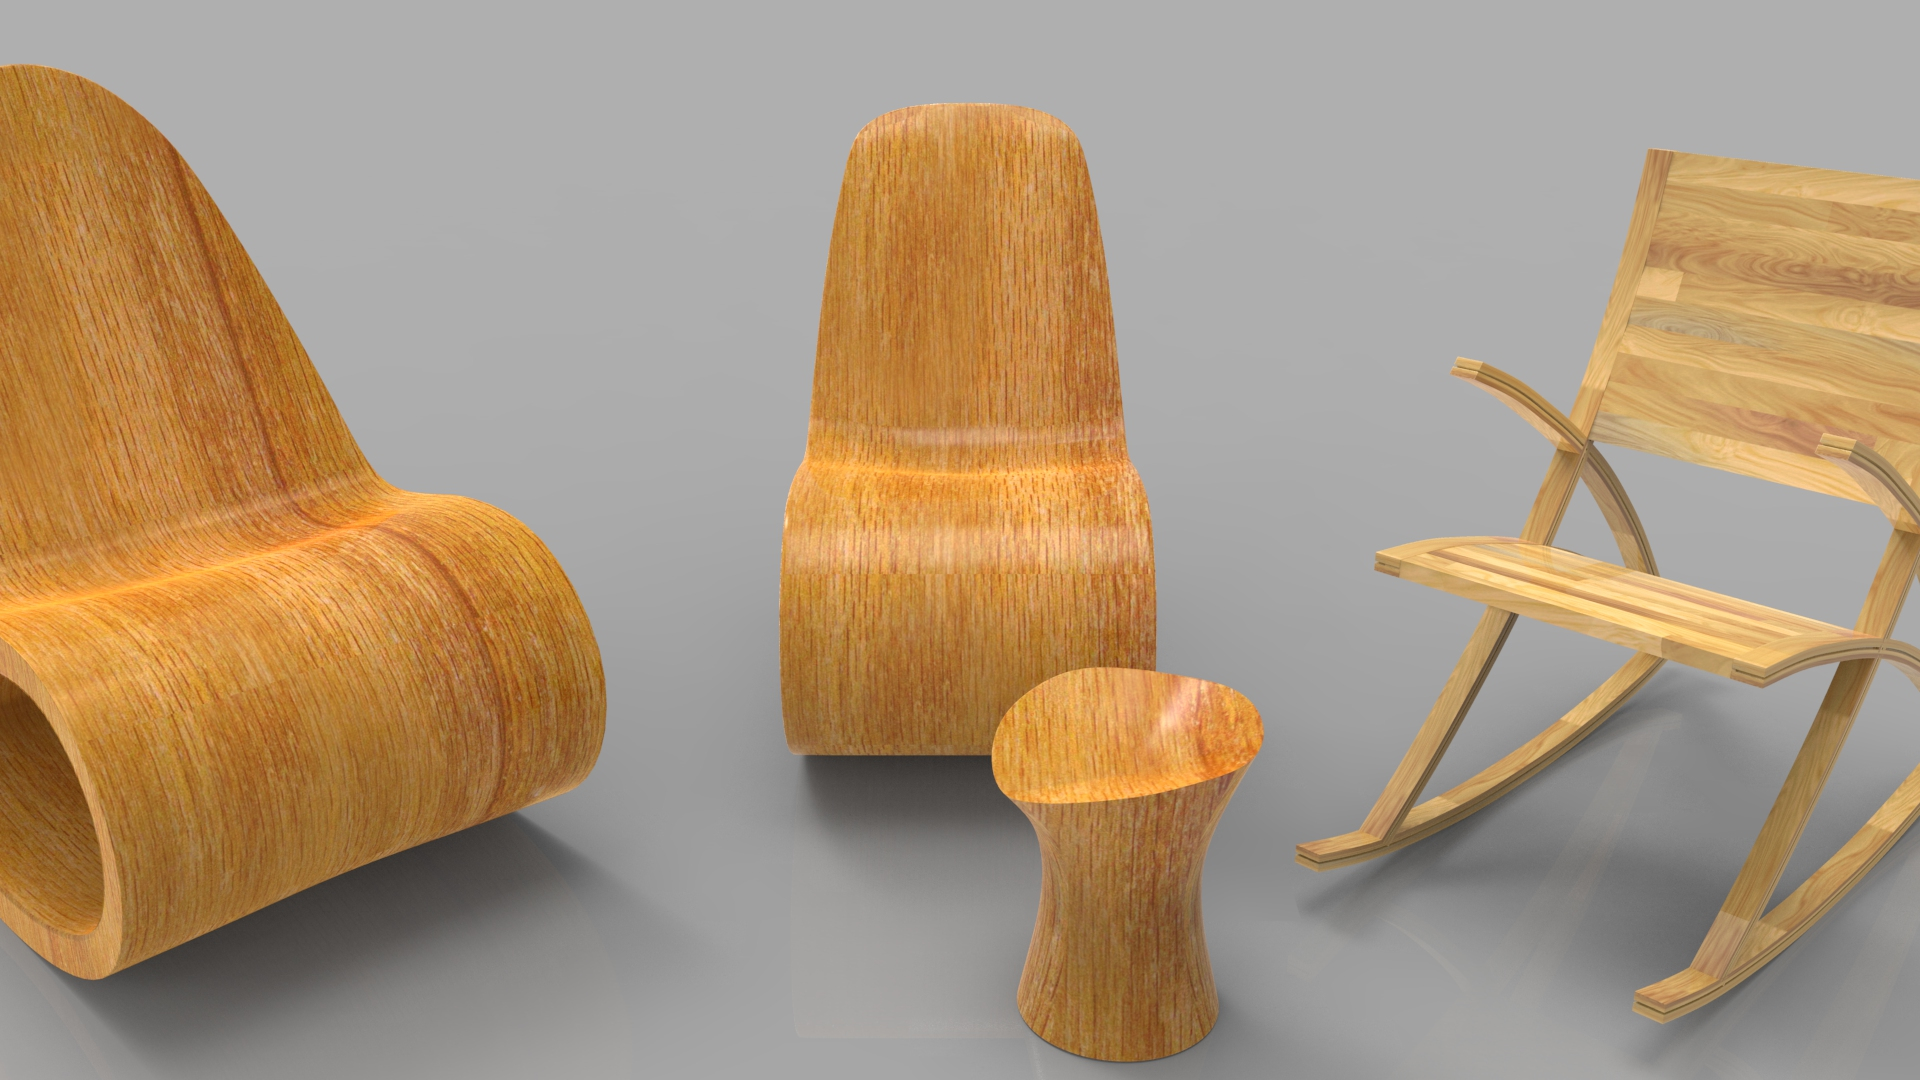 rocking wooden chair collection 3d model max fbx ma mb obj 286171